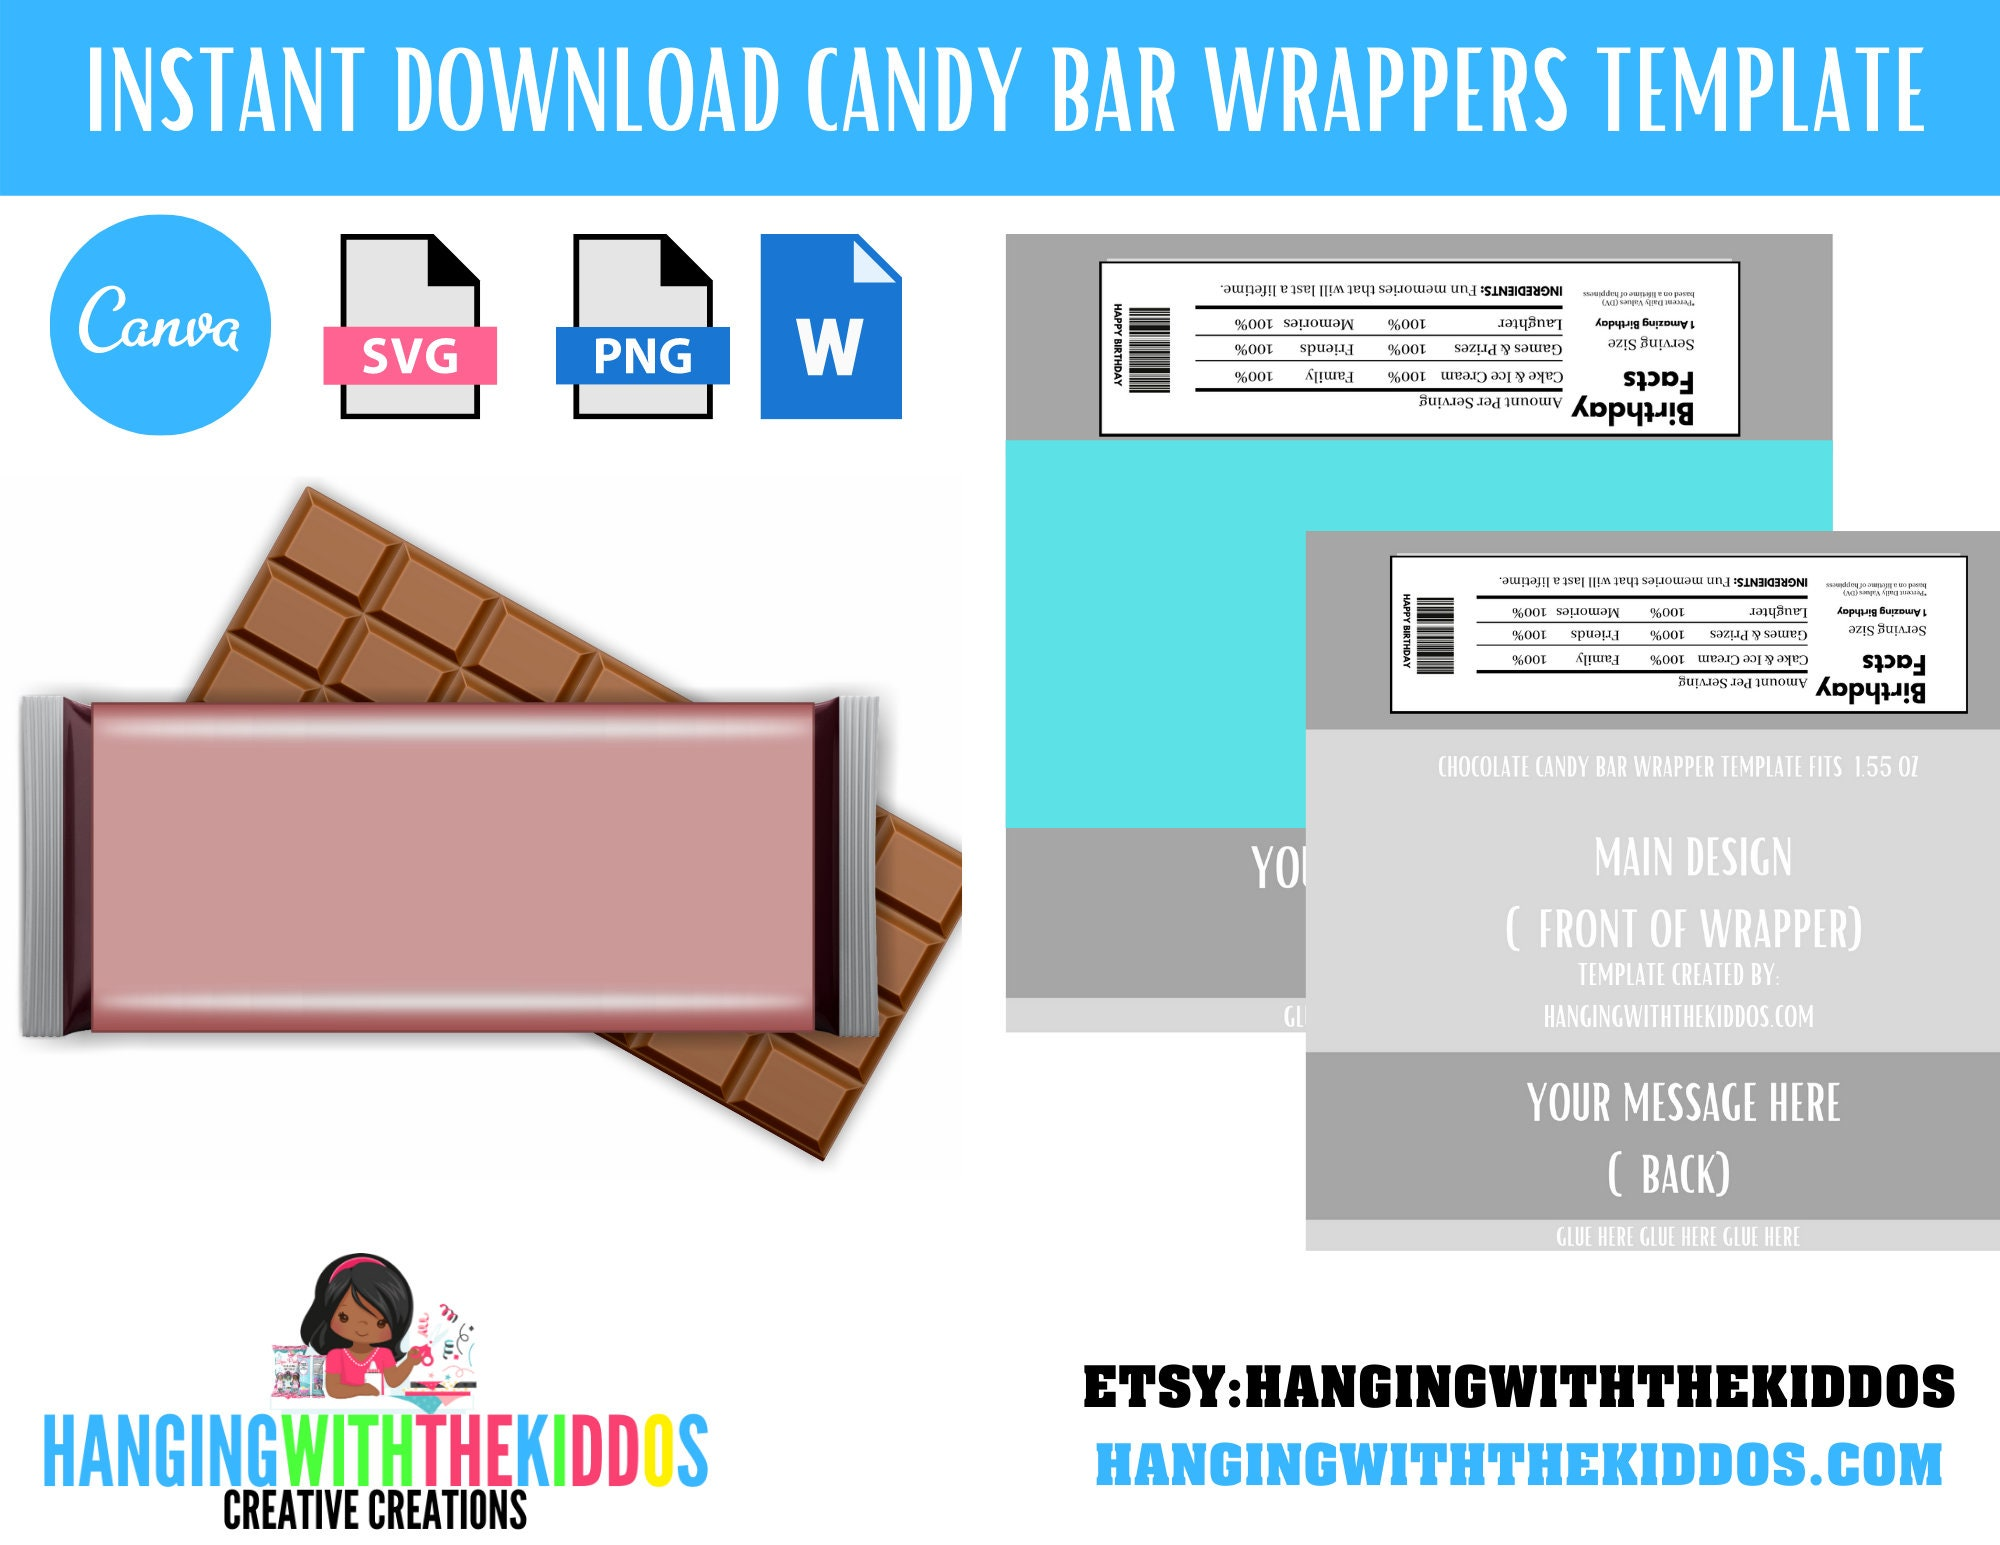 Chocolate Bar: Blank Candy Bar Wrapper Template Instant Download  Canva  Editable Template Within Blank Candy Bar Wrapper Template